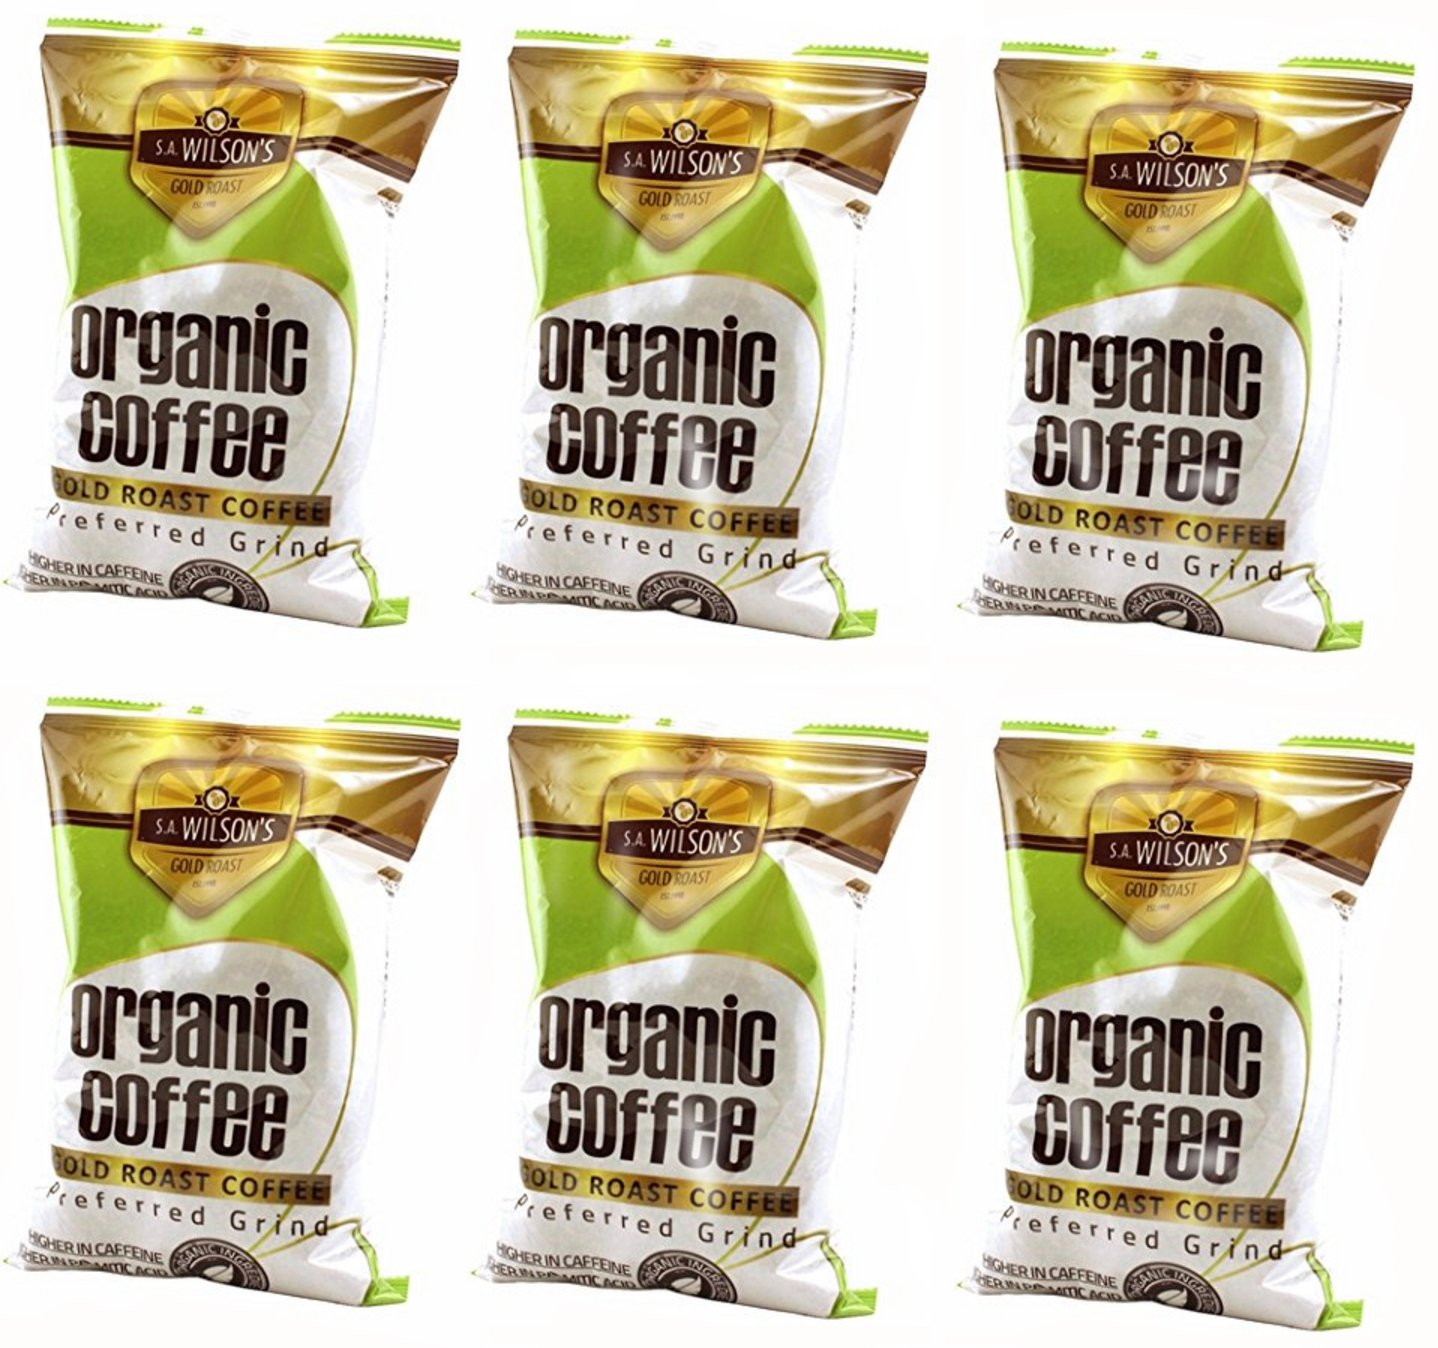 Organic Enema Coffee - One Pound - by S.A. Wilson - Pack of 6